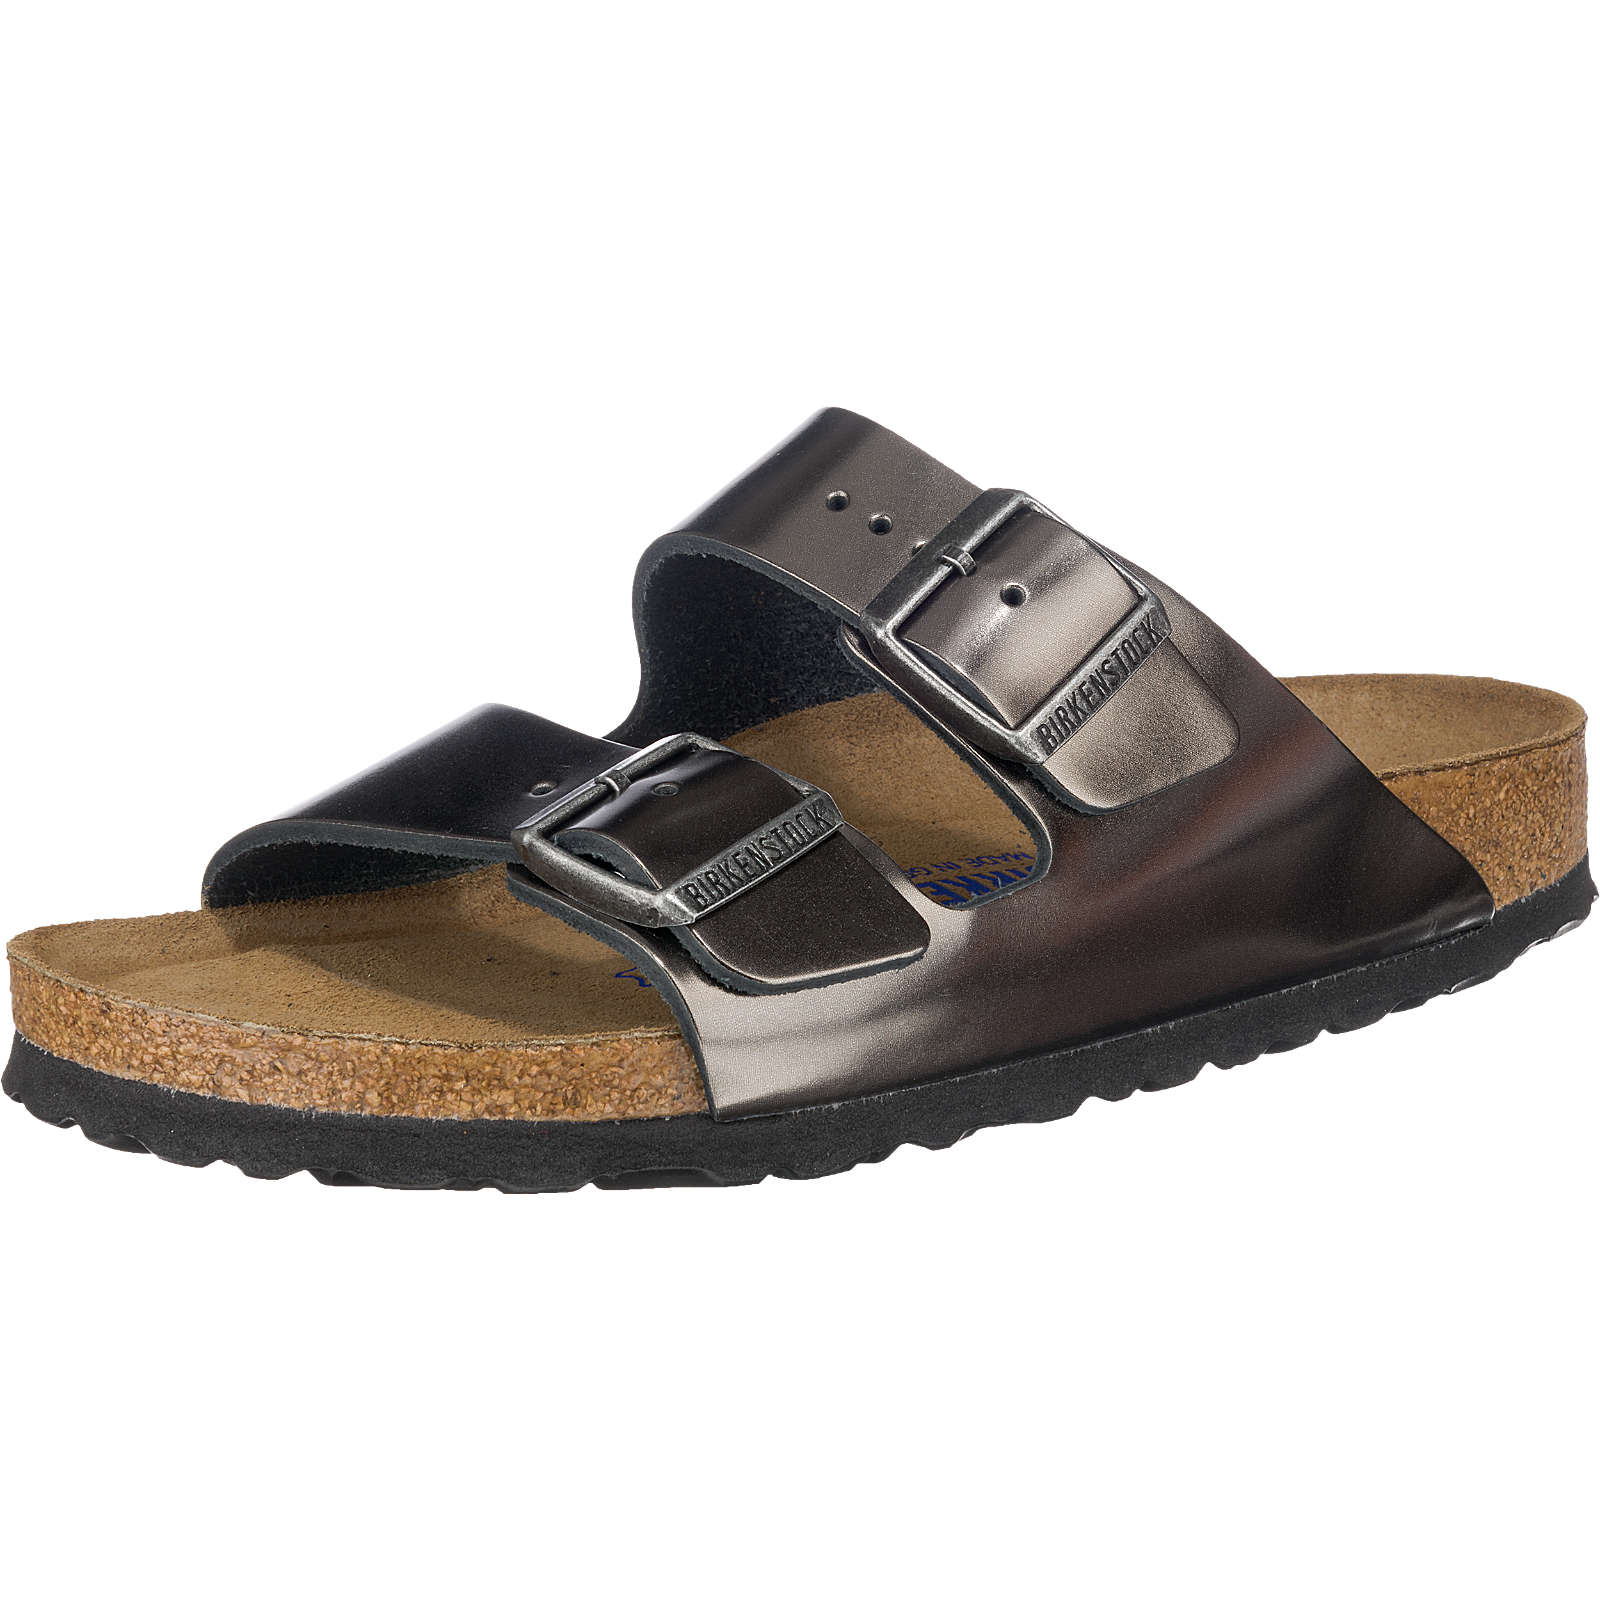 birkenstock arizona pantoletten schmal anthrazit damen gr 40 outlet clogs pantoletten. Black Bedroom Furniture Sets. Home Design Ideas